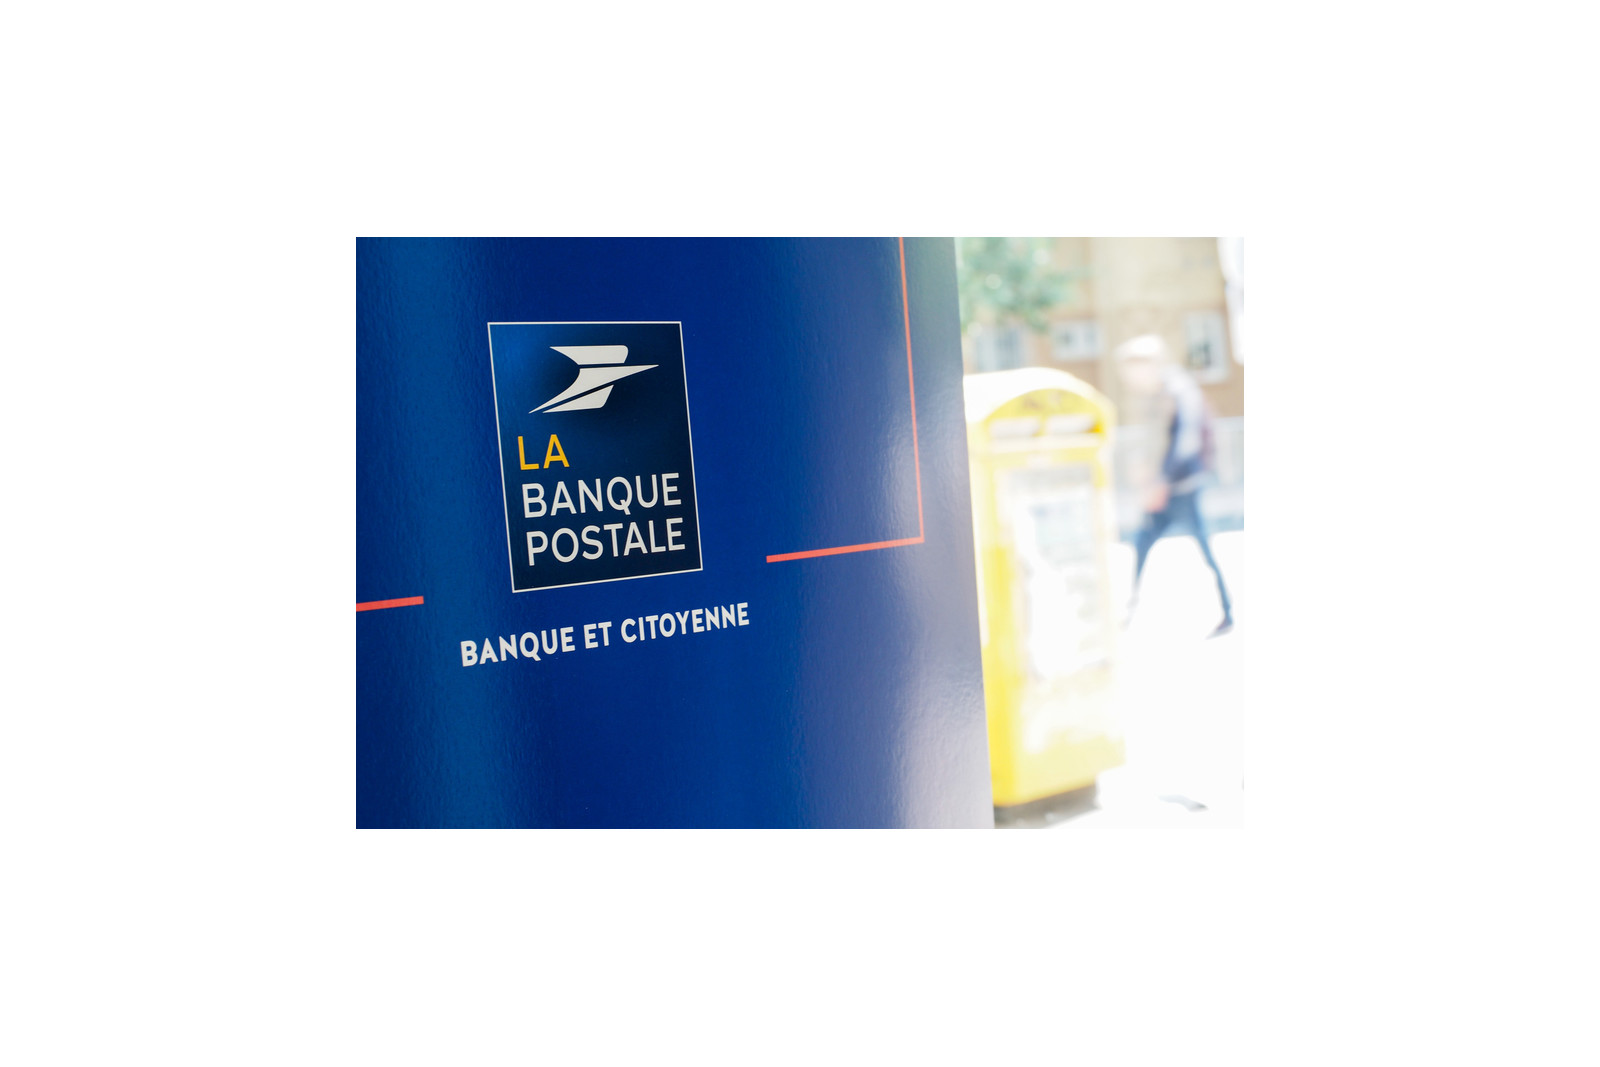 The Banque Postale